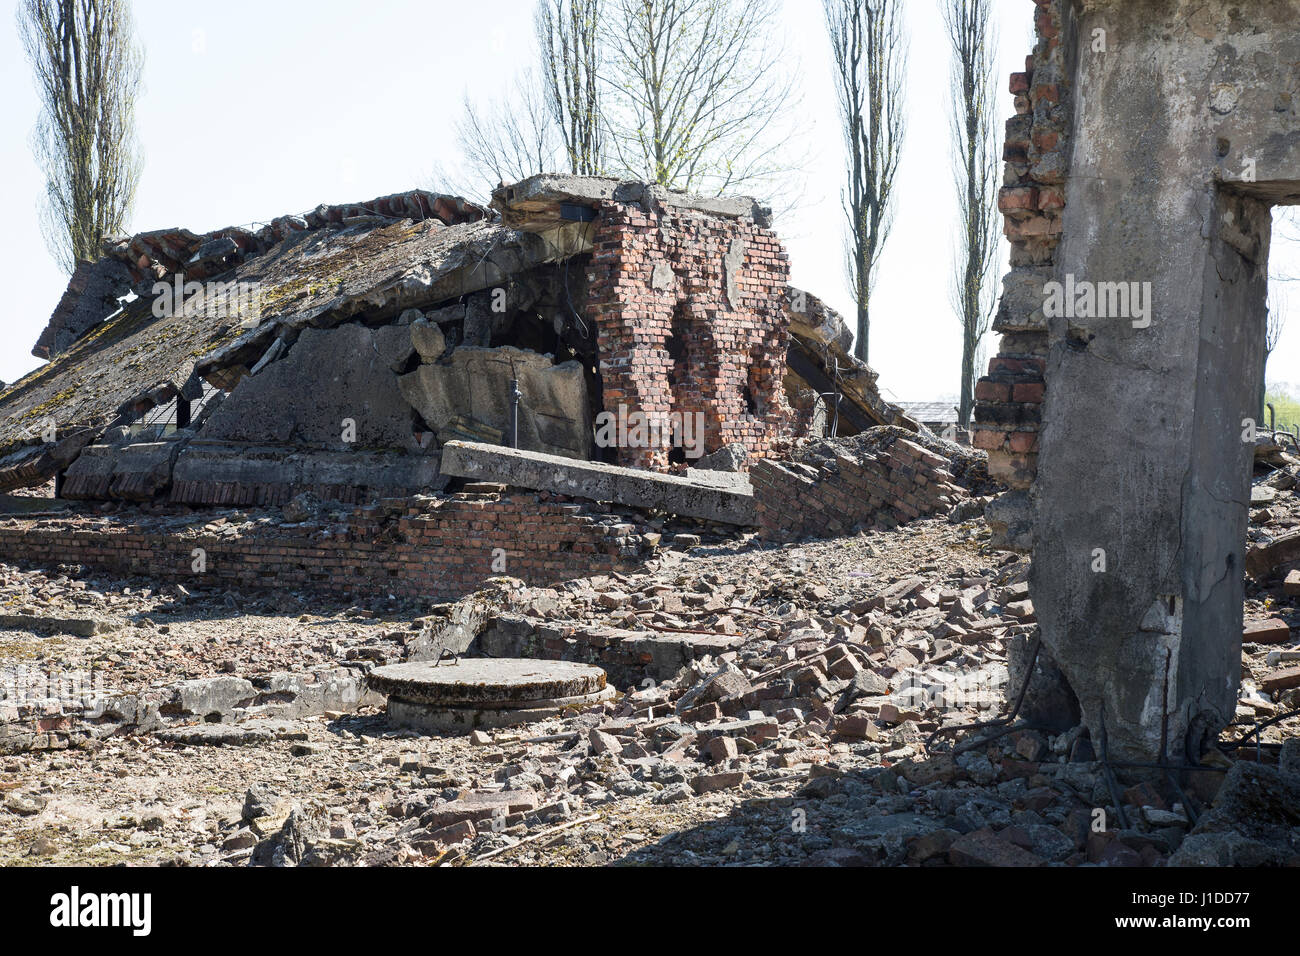 Ruins of crematorium ovens at Auschwitz Birkenau camp - Stock Image